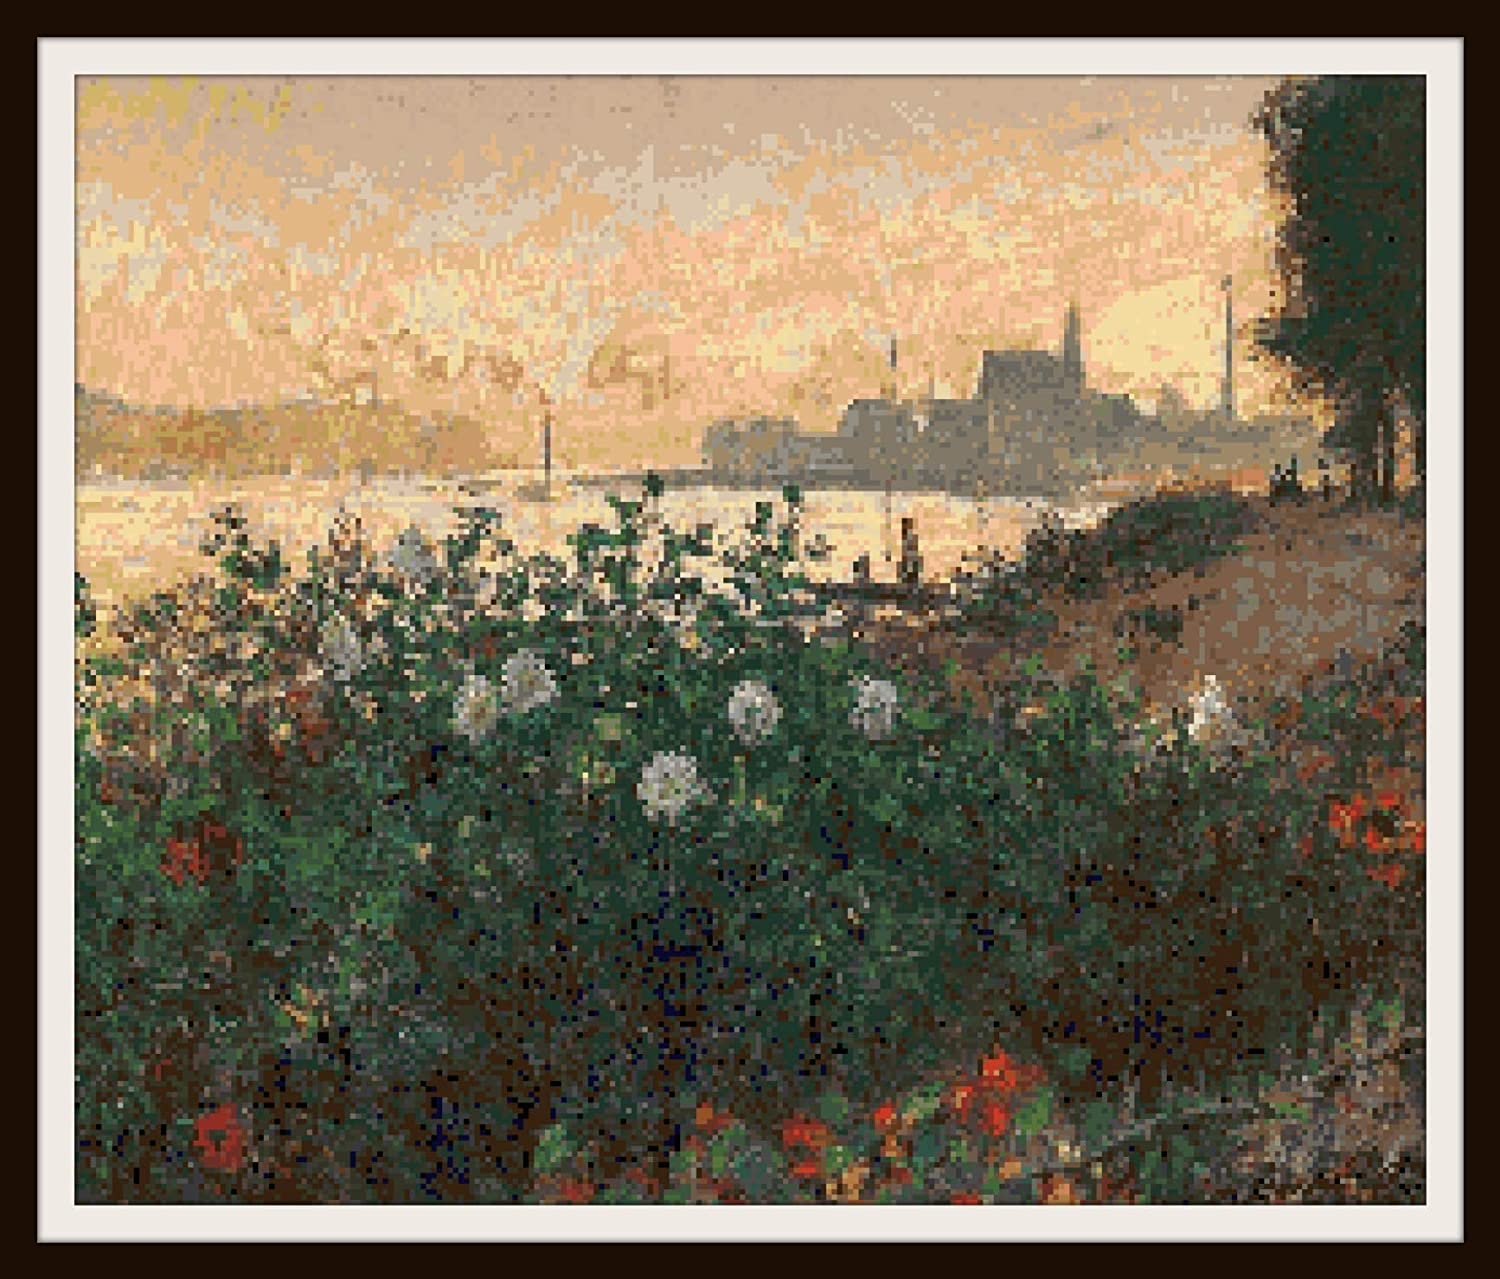 Claude Monet Fine Art Counted Cross Stitch Pattern 18 Count Charts with Colors and Symbols for DMC Floss